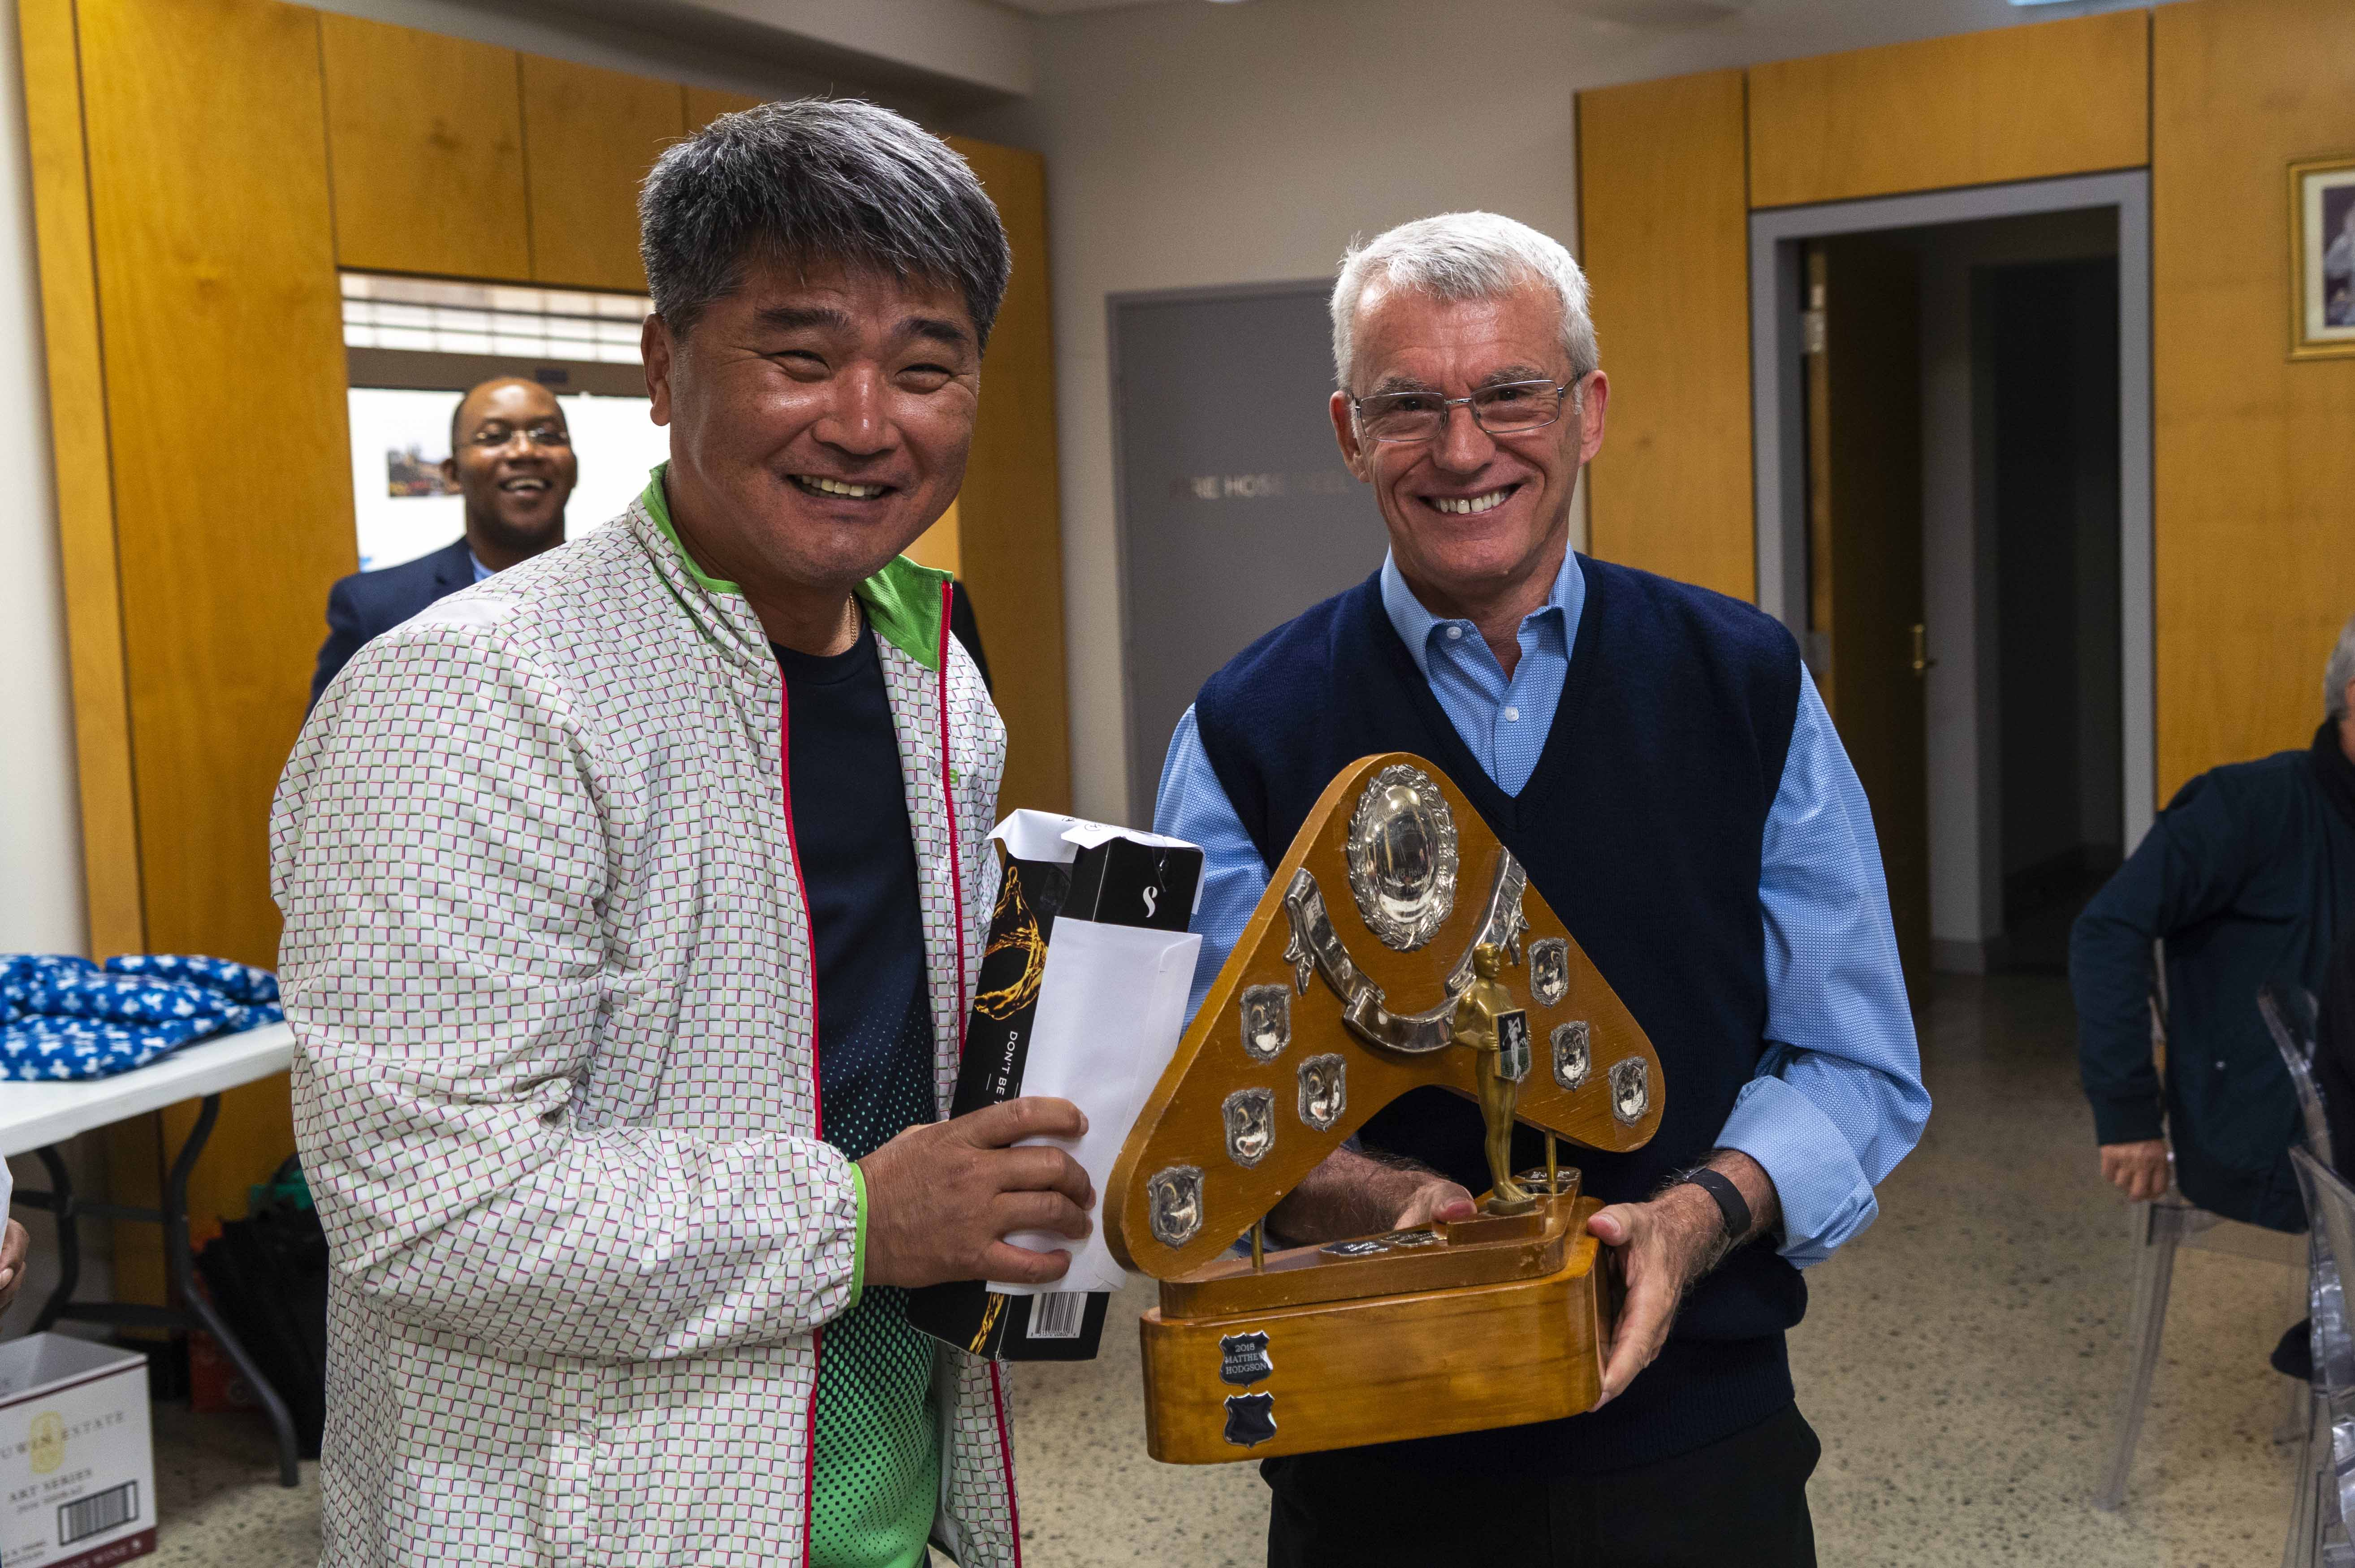 Archbishop Timothy Costelloe presents The Clergy Golf Cup to this year's tournament winner, Fr Benedict Lee. Photo: Josh Low.